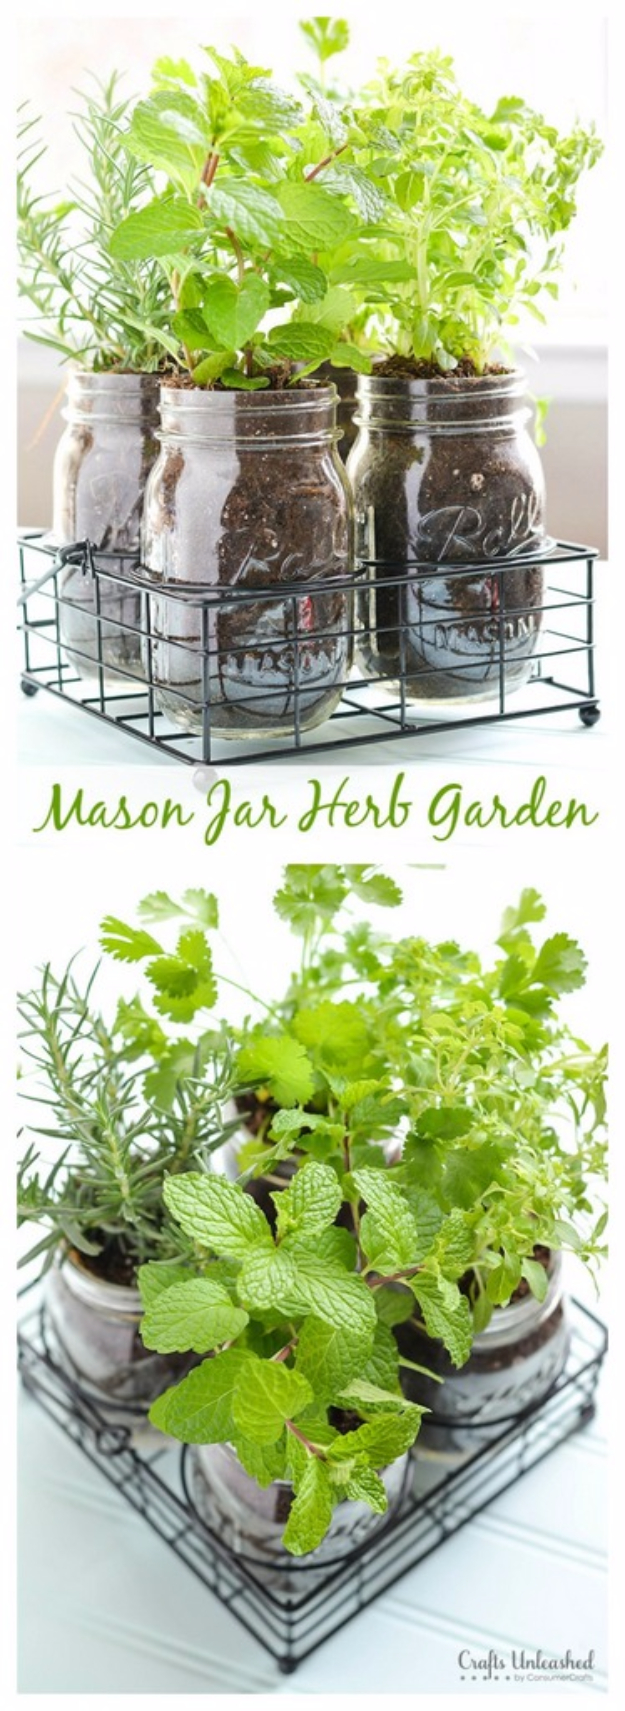 Mason Jar Crafts You Can Make In Under an Hour - Mason Jar DIY Herb Garden - Quick Mason Jar DIY Projects that Make Cool Home Decor and Awesome DIY Gifts - Best Creative Ideas for Mason Jars with Step By Step Tutorials and Instructions - For Teens, For Home, For Gifts, For Kids, For Summer, For Fall #masonjarcrafts #easycrafts